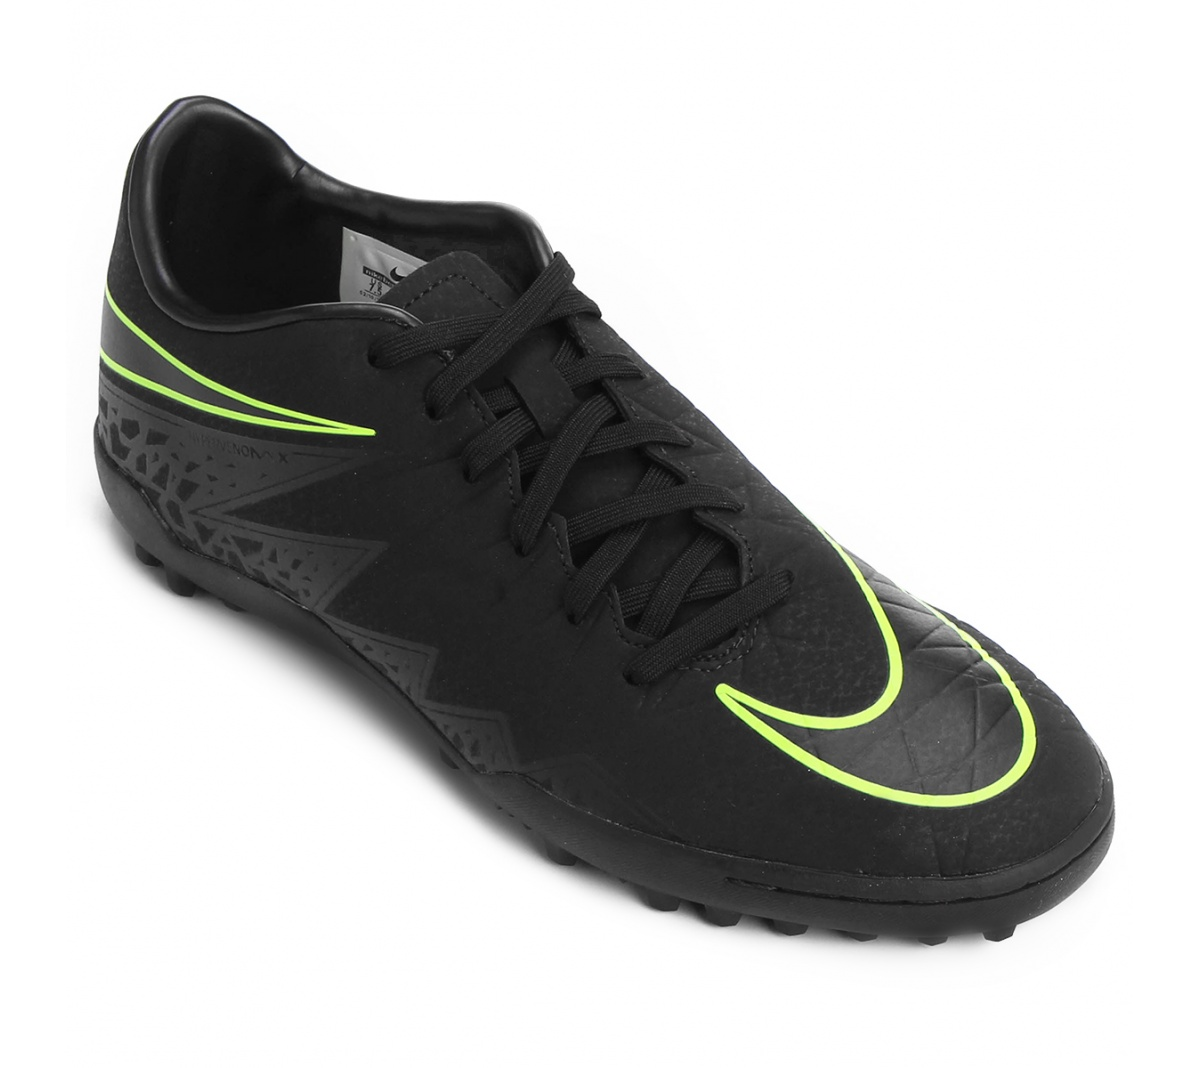 284101549abf6 Customize Nike Free 3.0 V5 Tennis Shoes